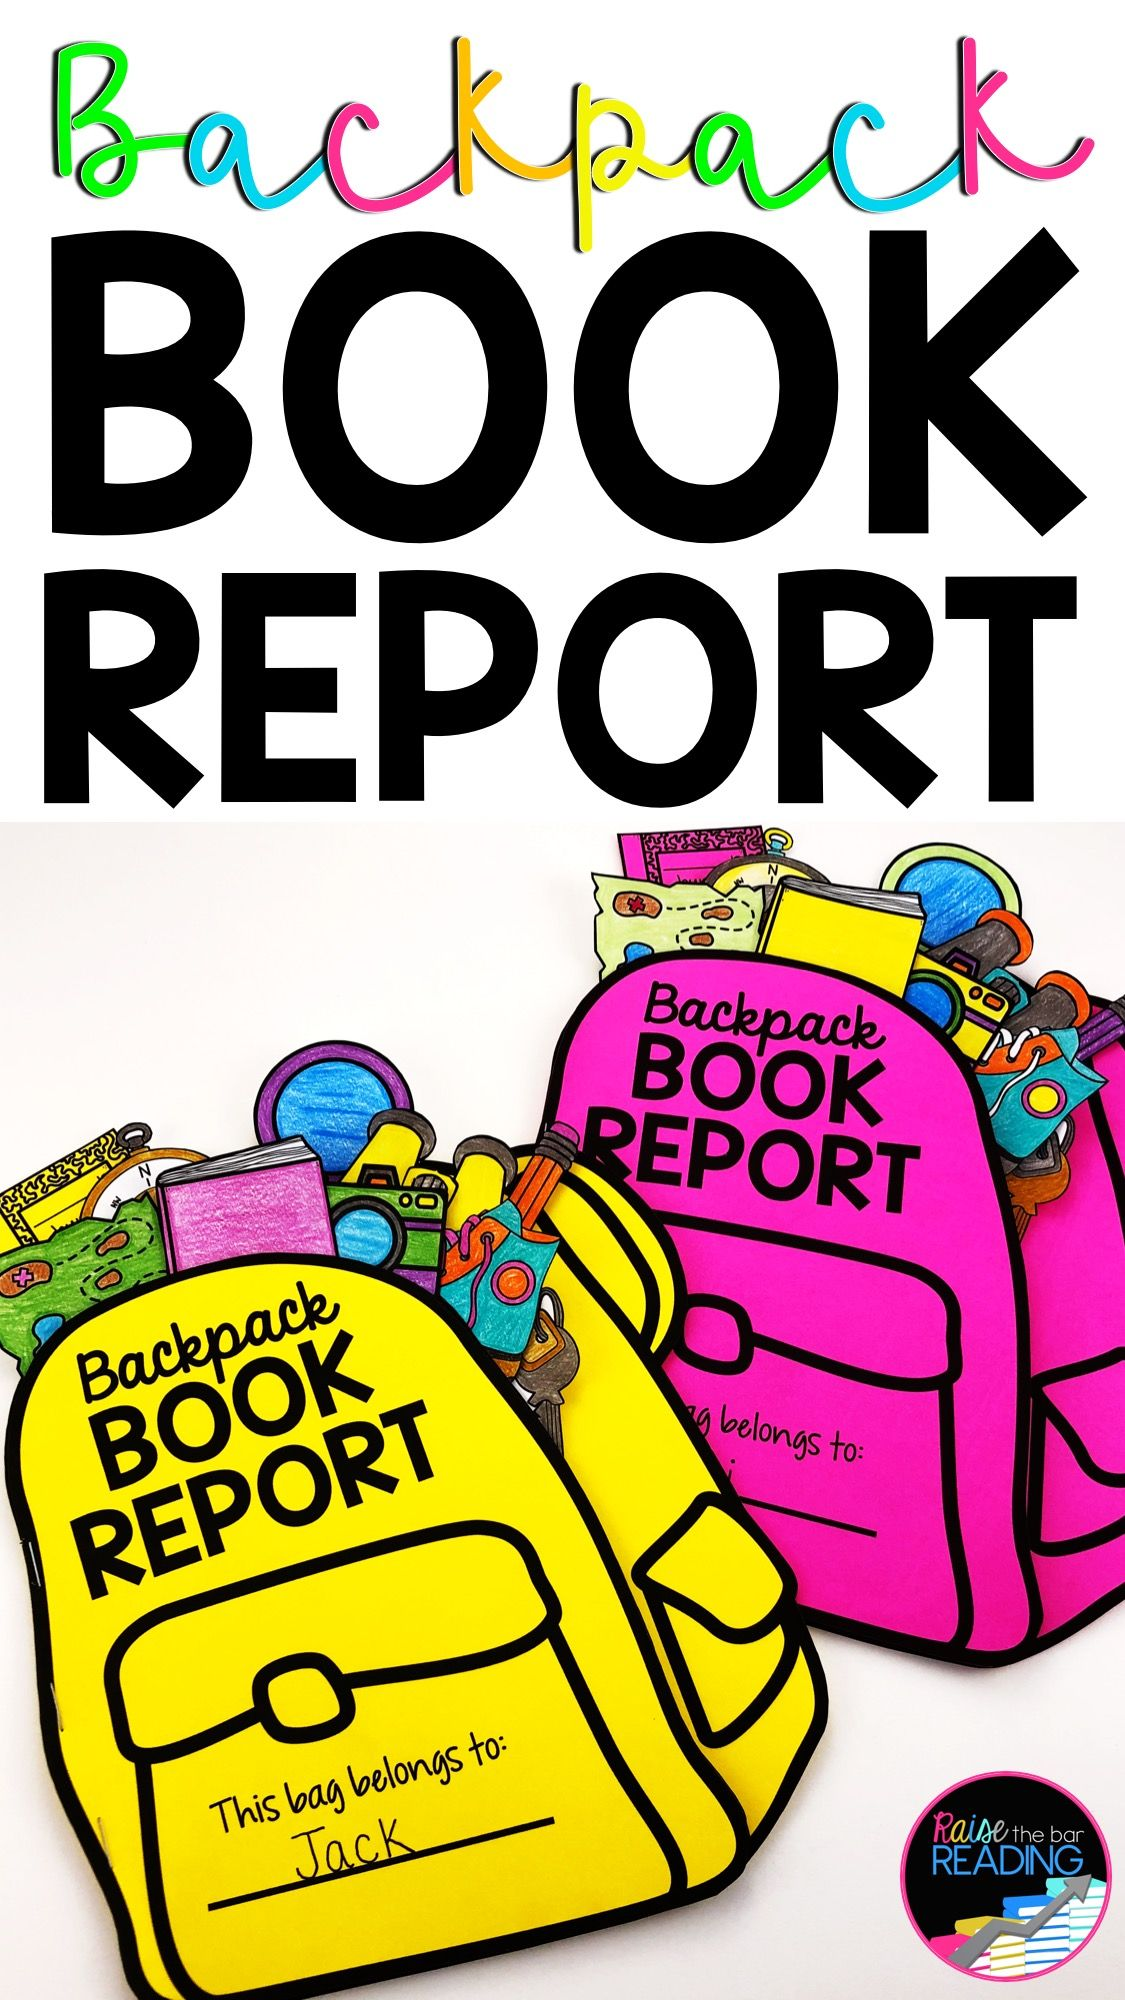 Backpack Book Report in 2020 Book report, Book report